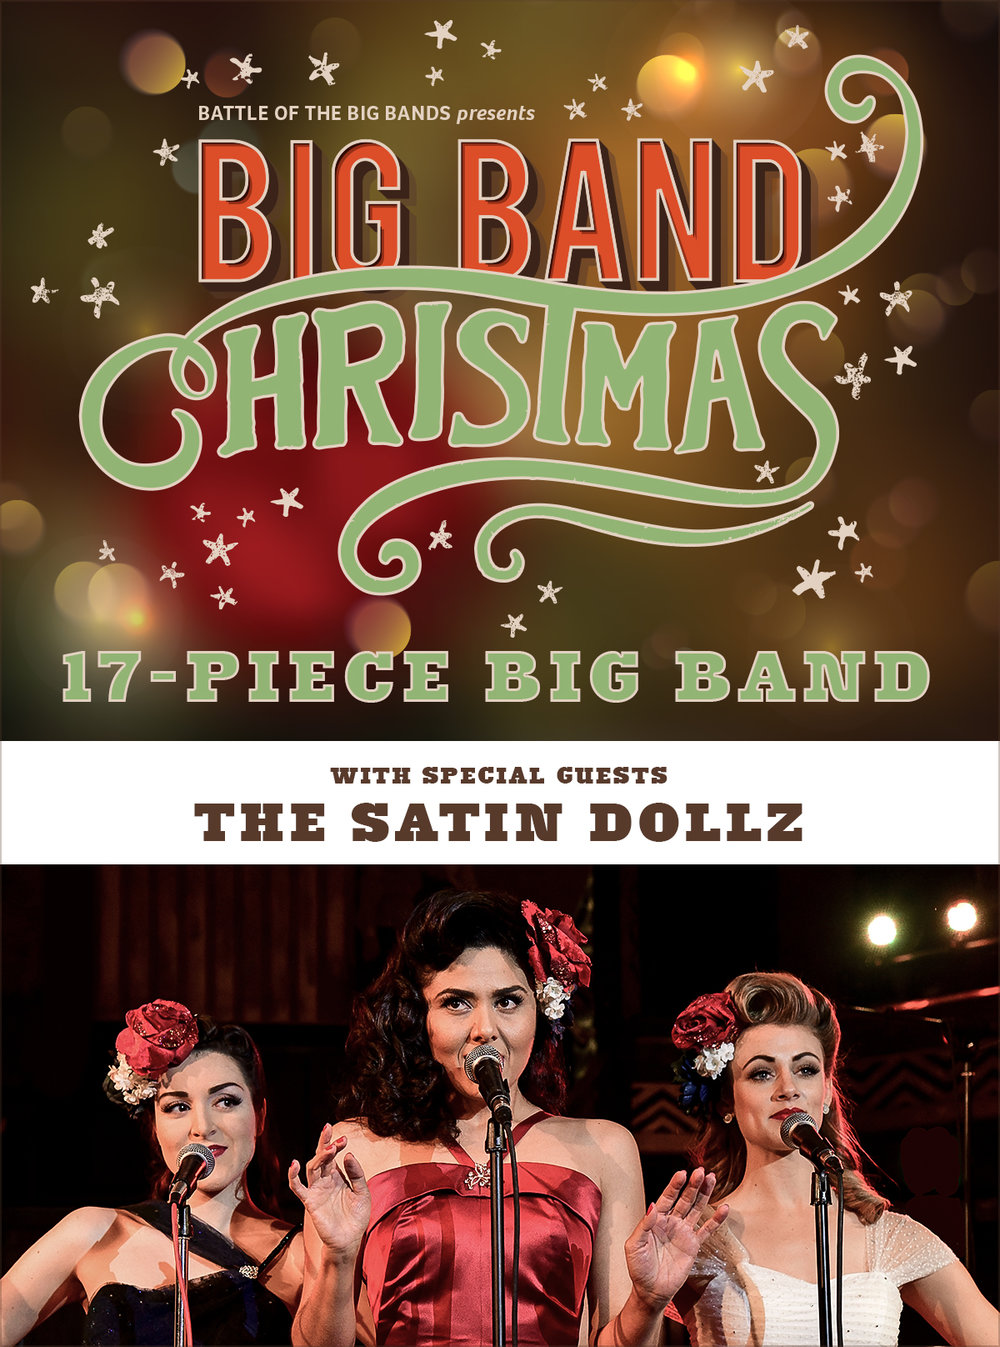 big band christmas vacaville ca 200pm gary vecchiarelli productions - Big Band Christmas